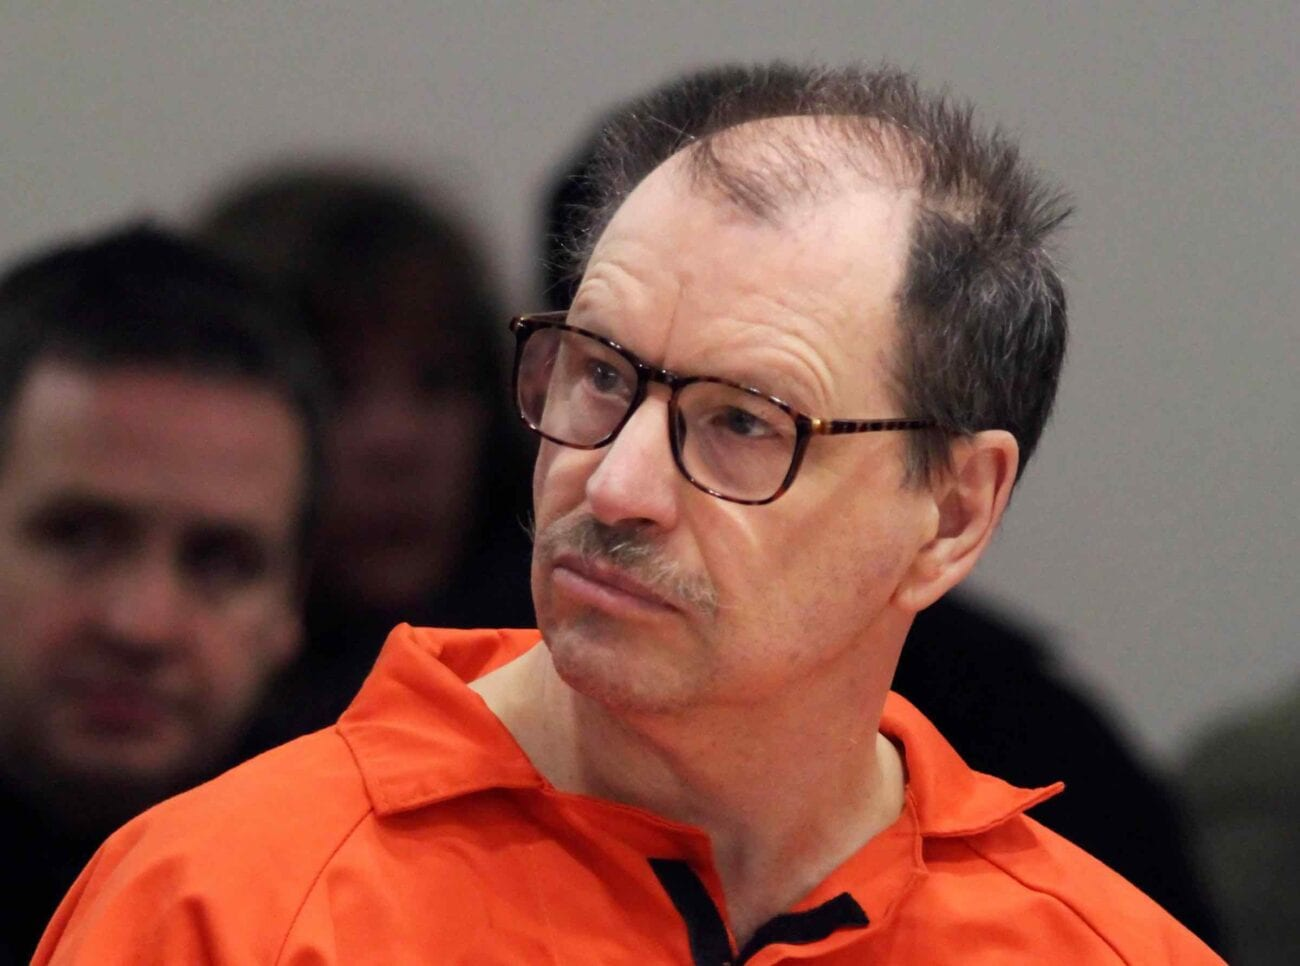 It's hard to figure out why we're so obsessed with serial killers. Here's the haunting tale of Gary Ridgway the Green River Killer.